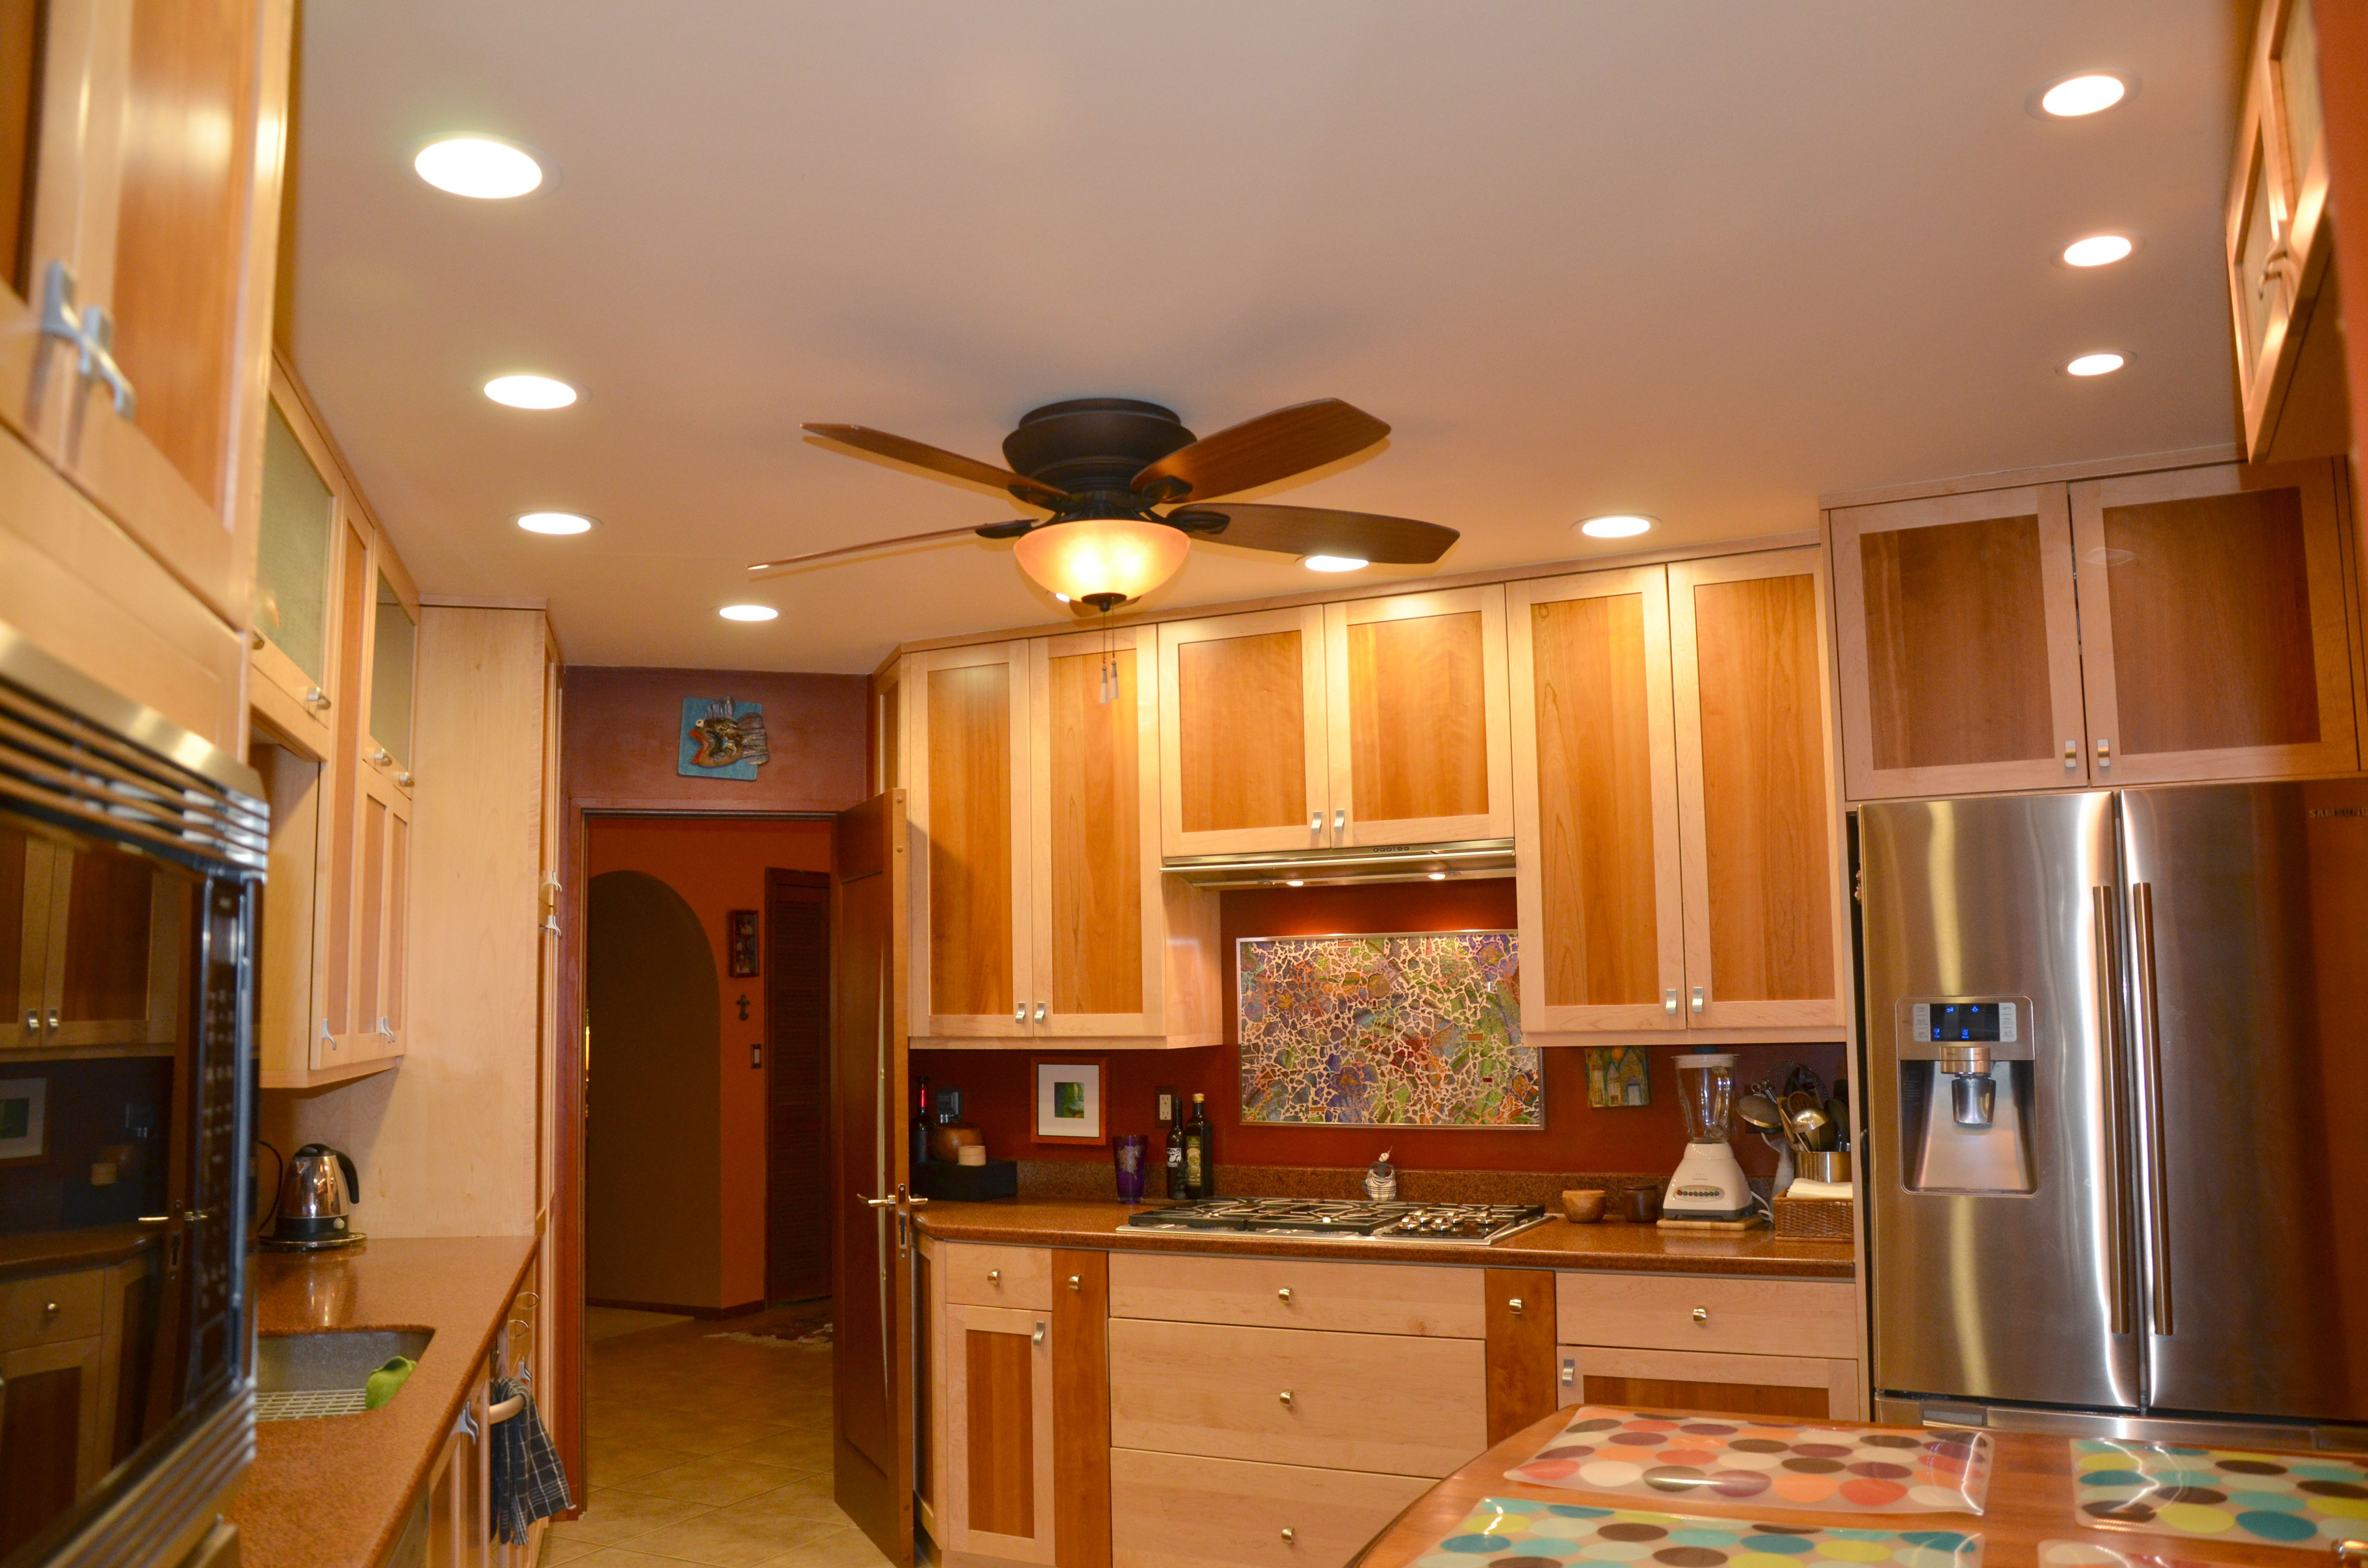 Lighting Your Kitchen Like Pro Kitchen Recessed Lighting